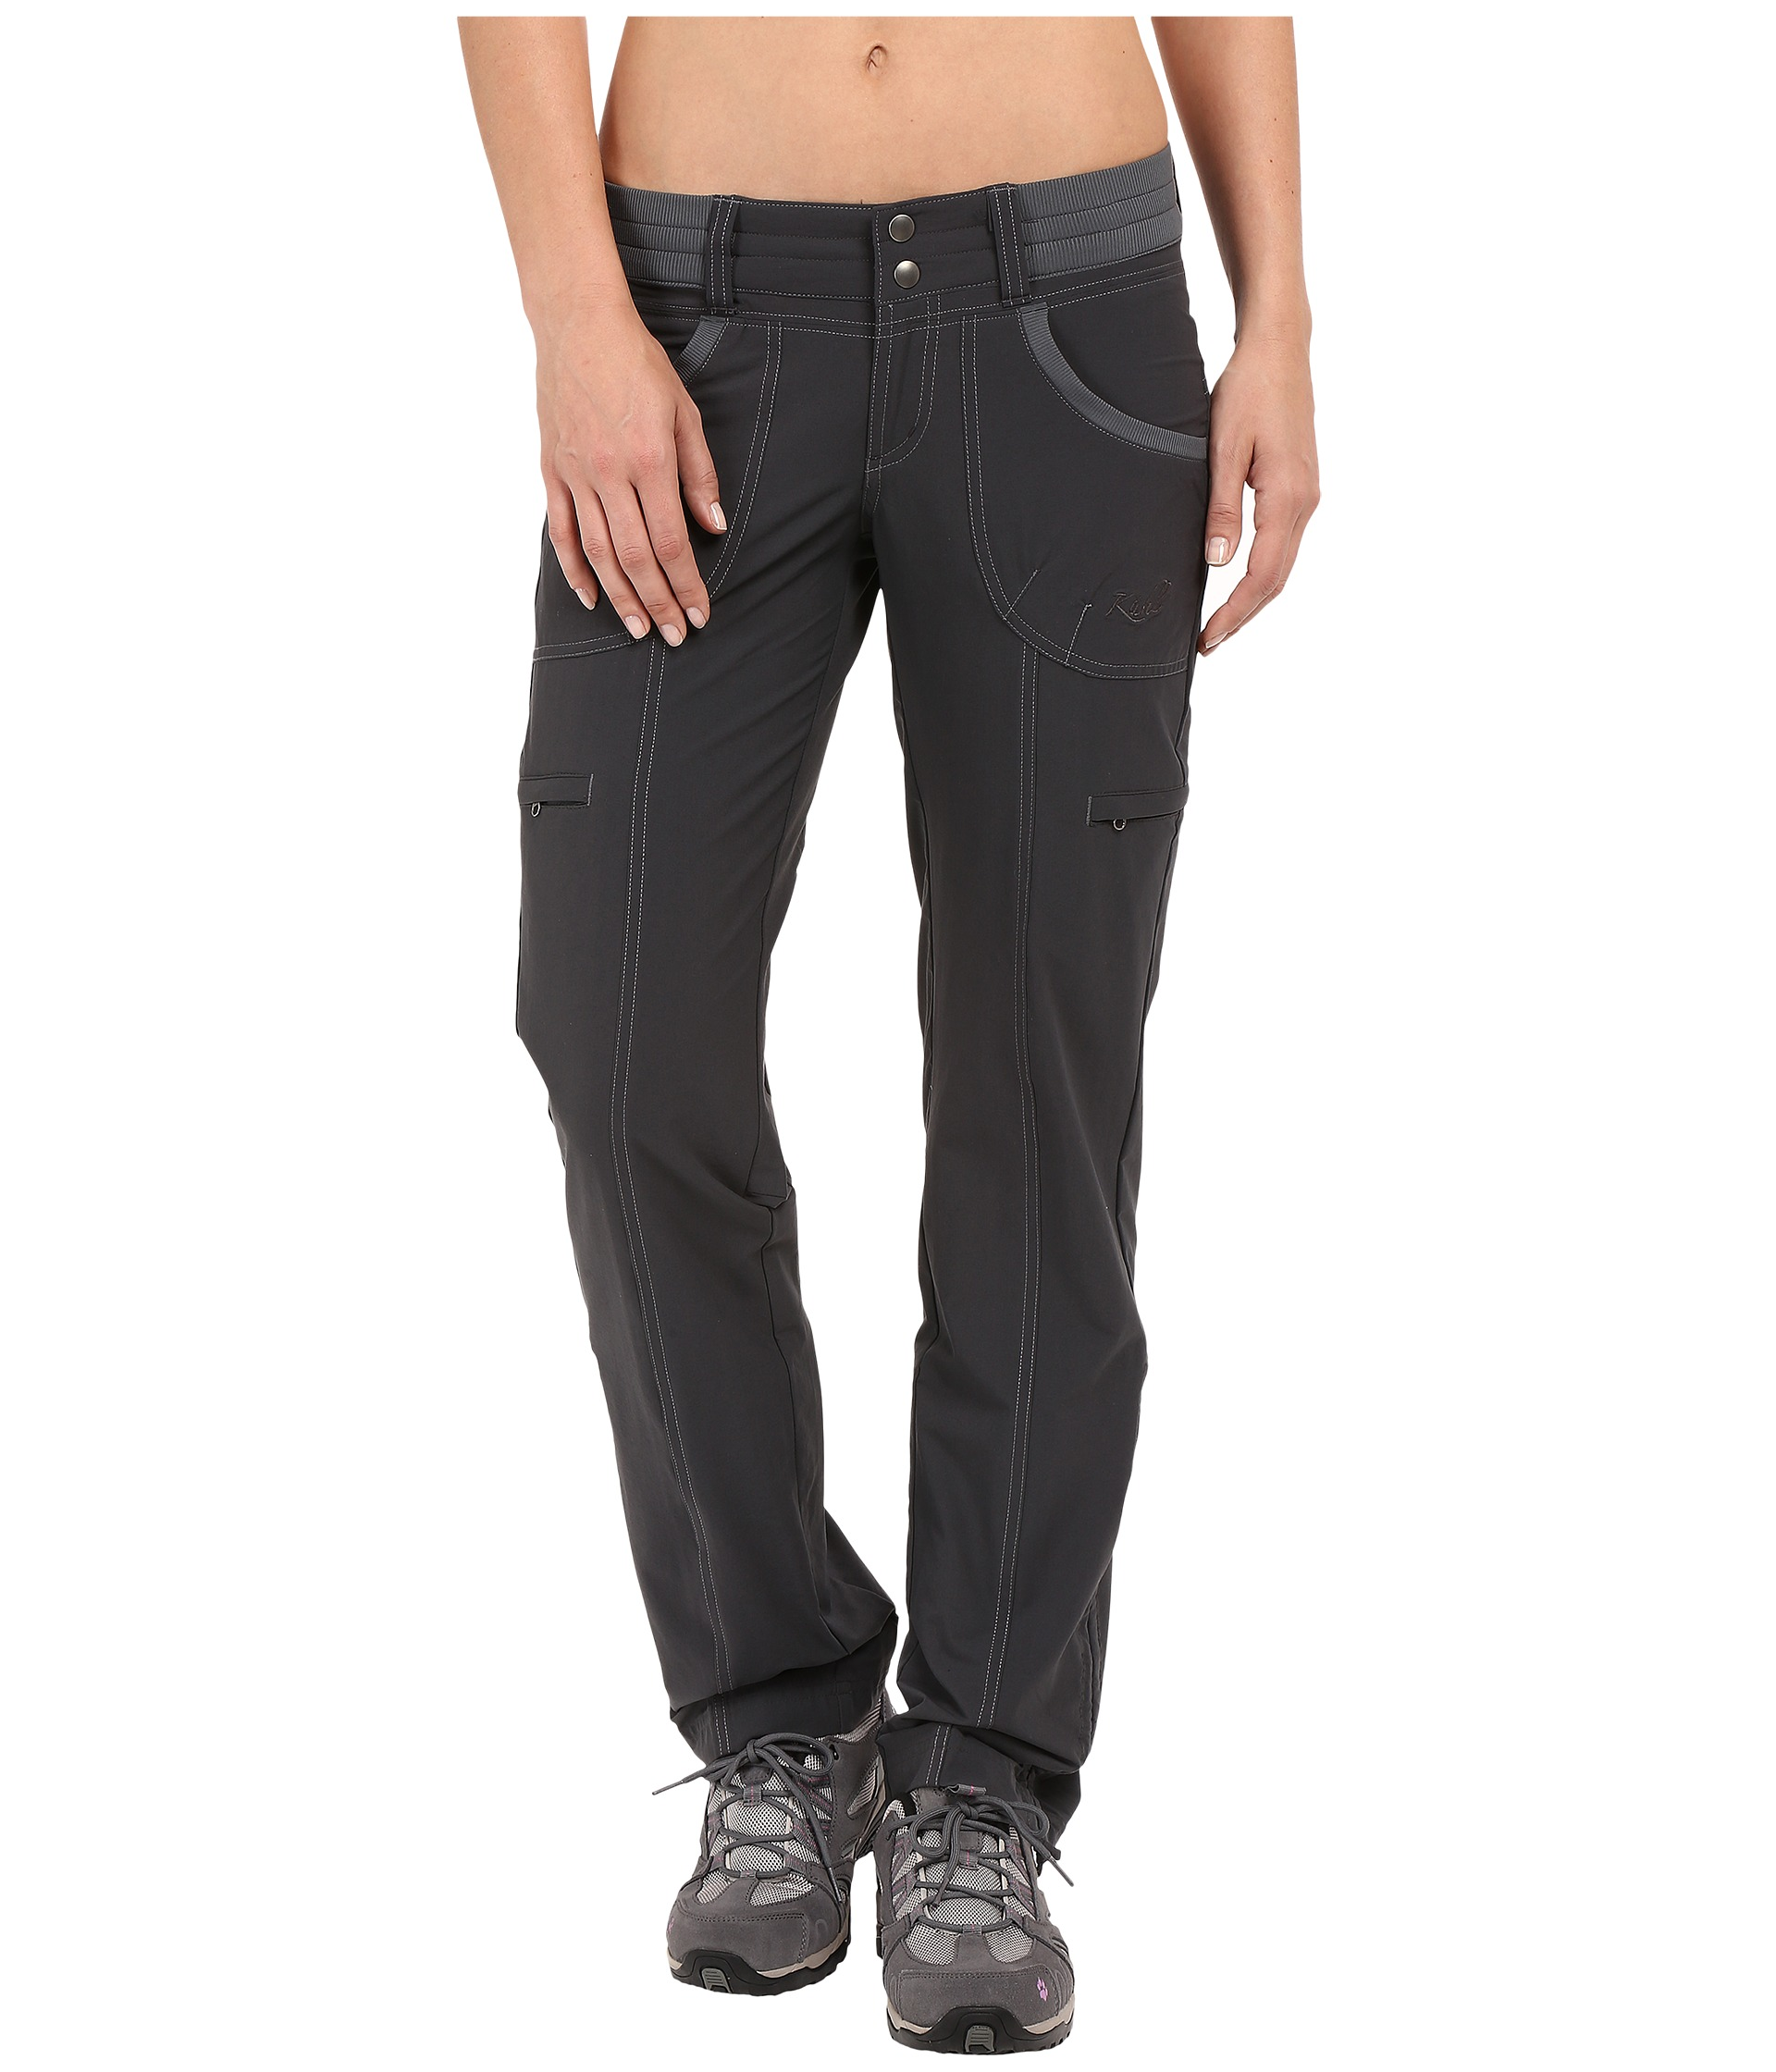 Model This Season, Relax With The Soft Ease Of Kuhls Mova Pants Knitted With A Woven Texture, These Stretch Nylon Pants Give You Goodlooking Street Wear With The Comfort Of Yoga Pants A Contoured Waist With Drawcord Allows Easy Onoff Of